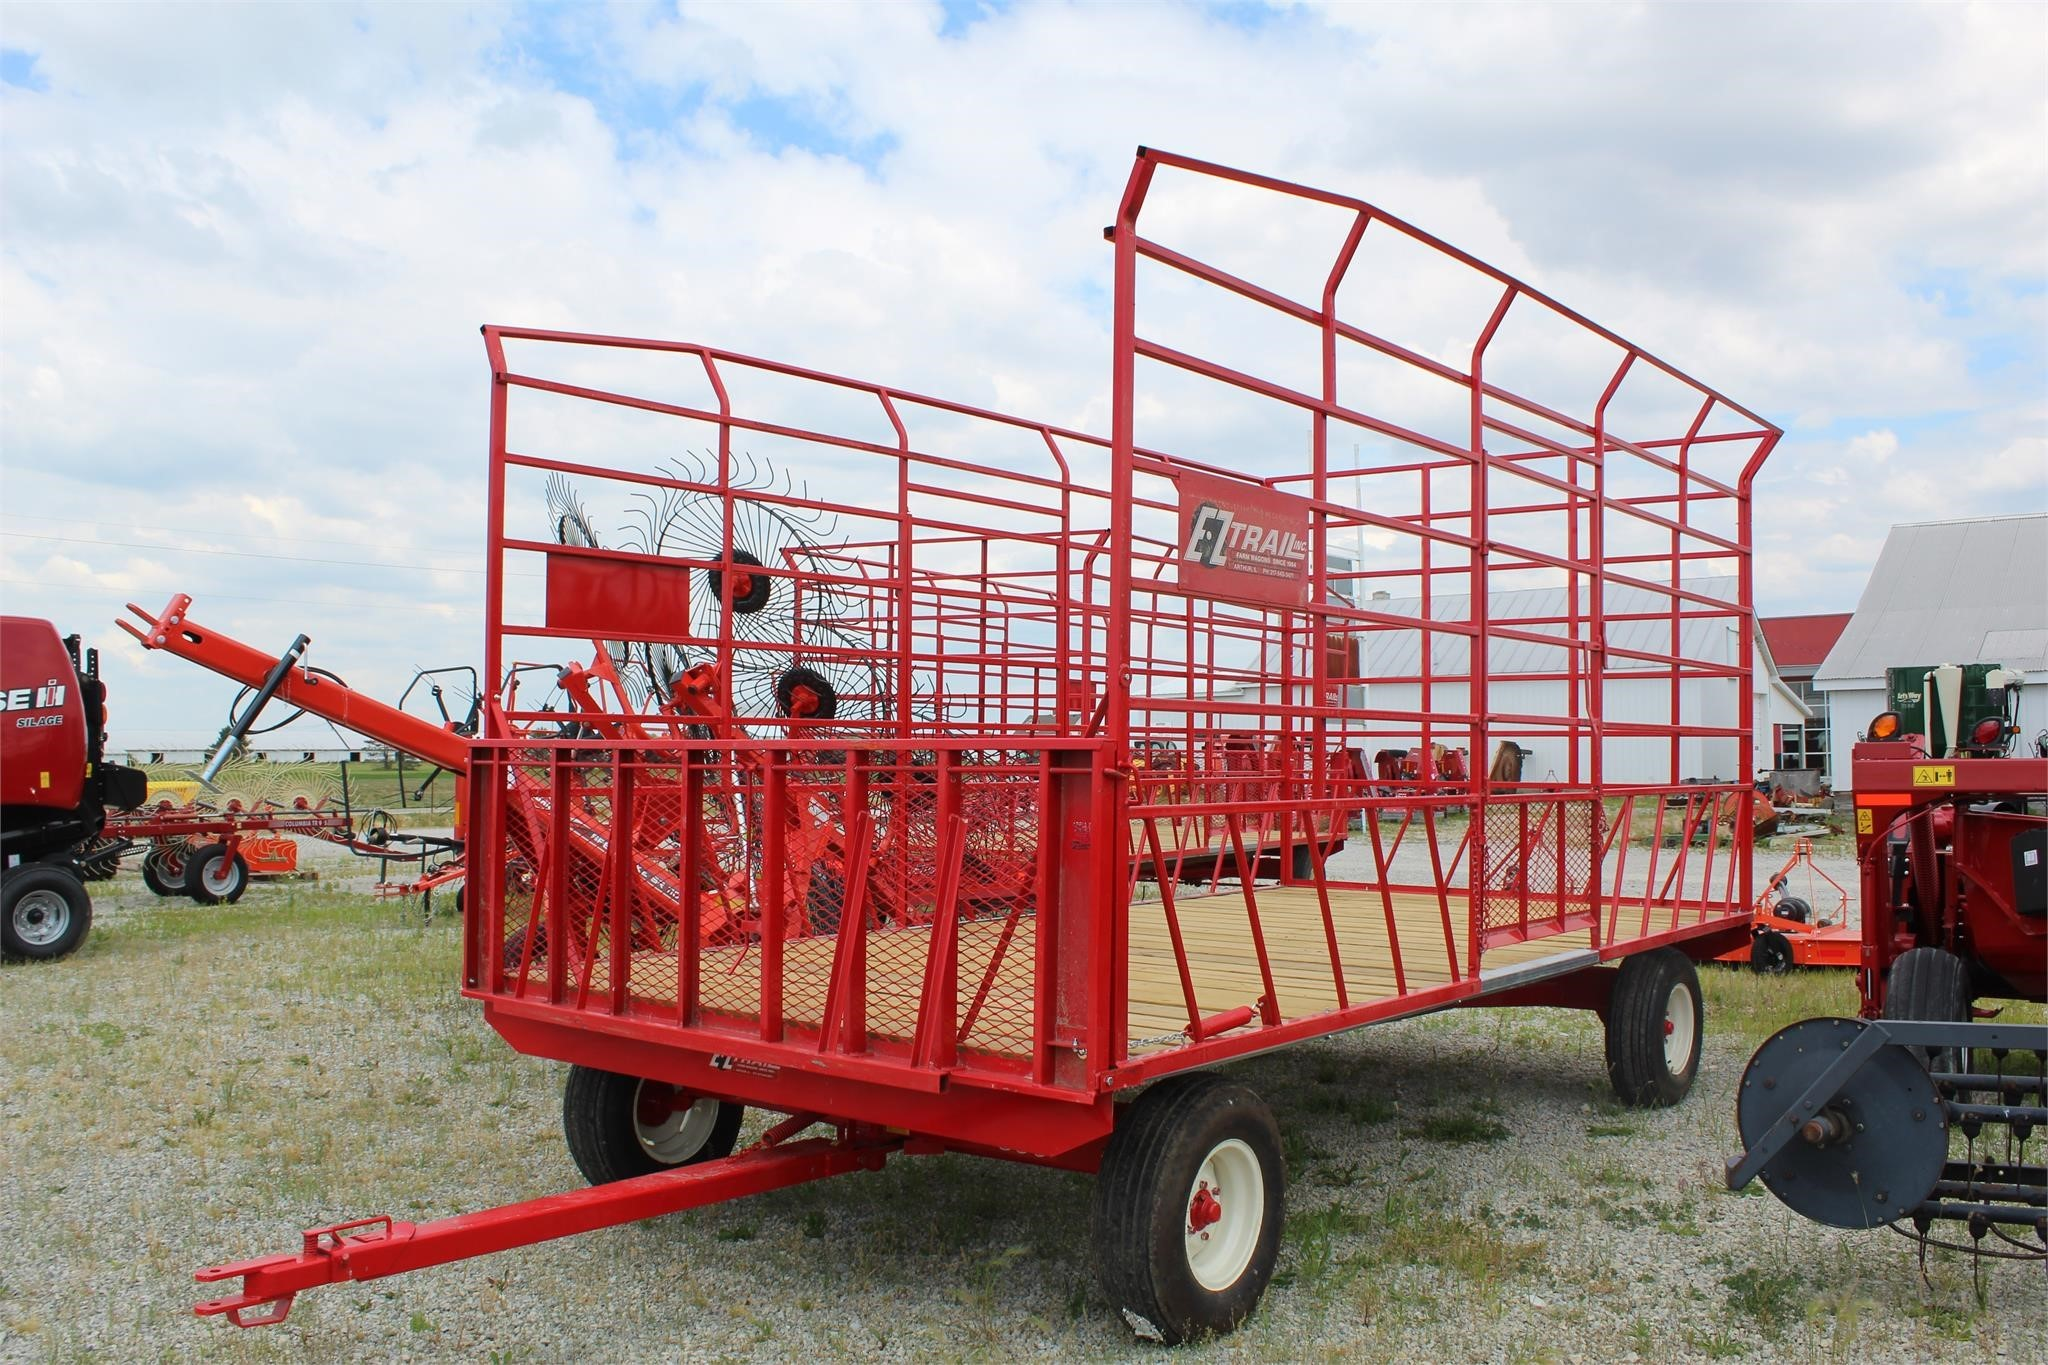 2020 E-Z Trail 918 Bale Wagons and Trailer